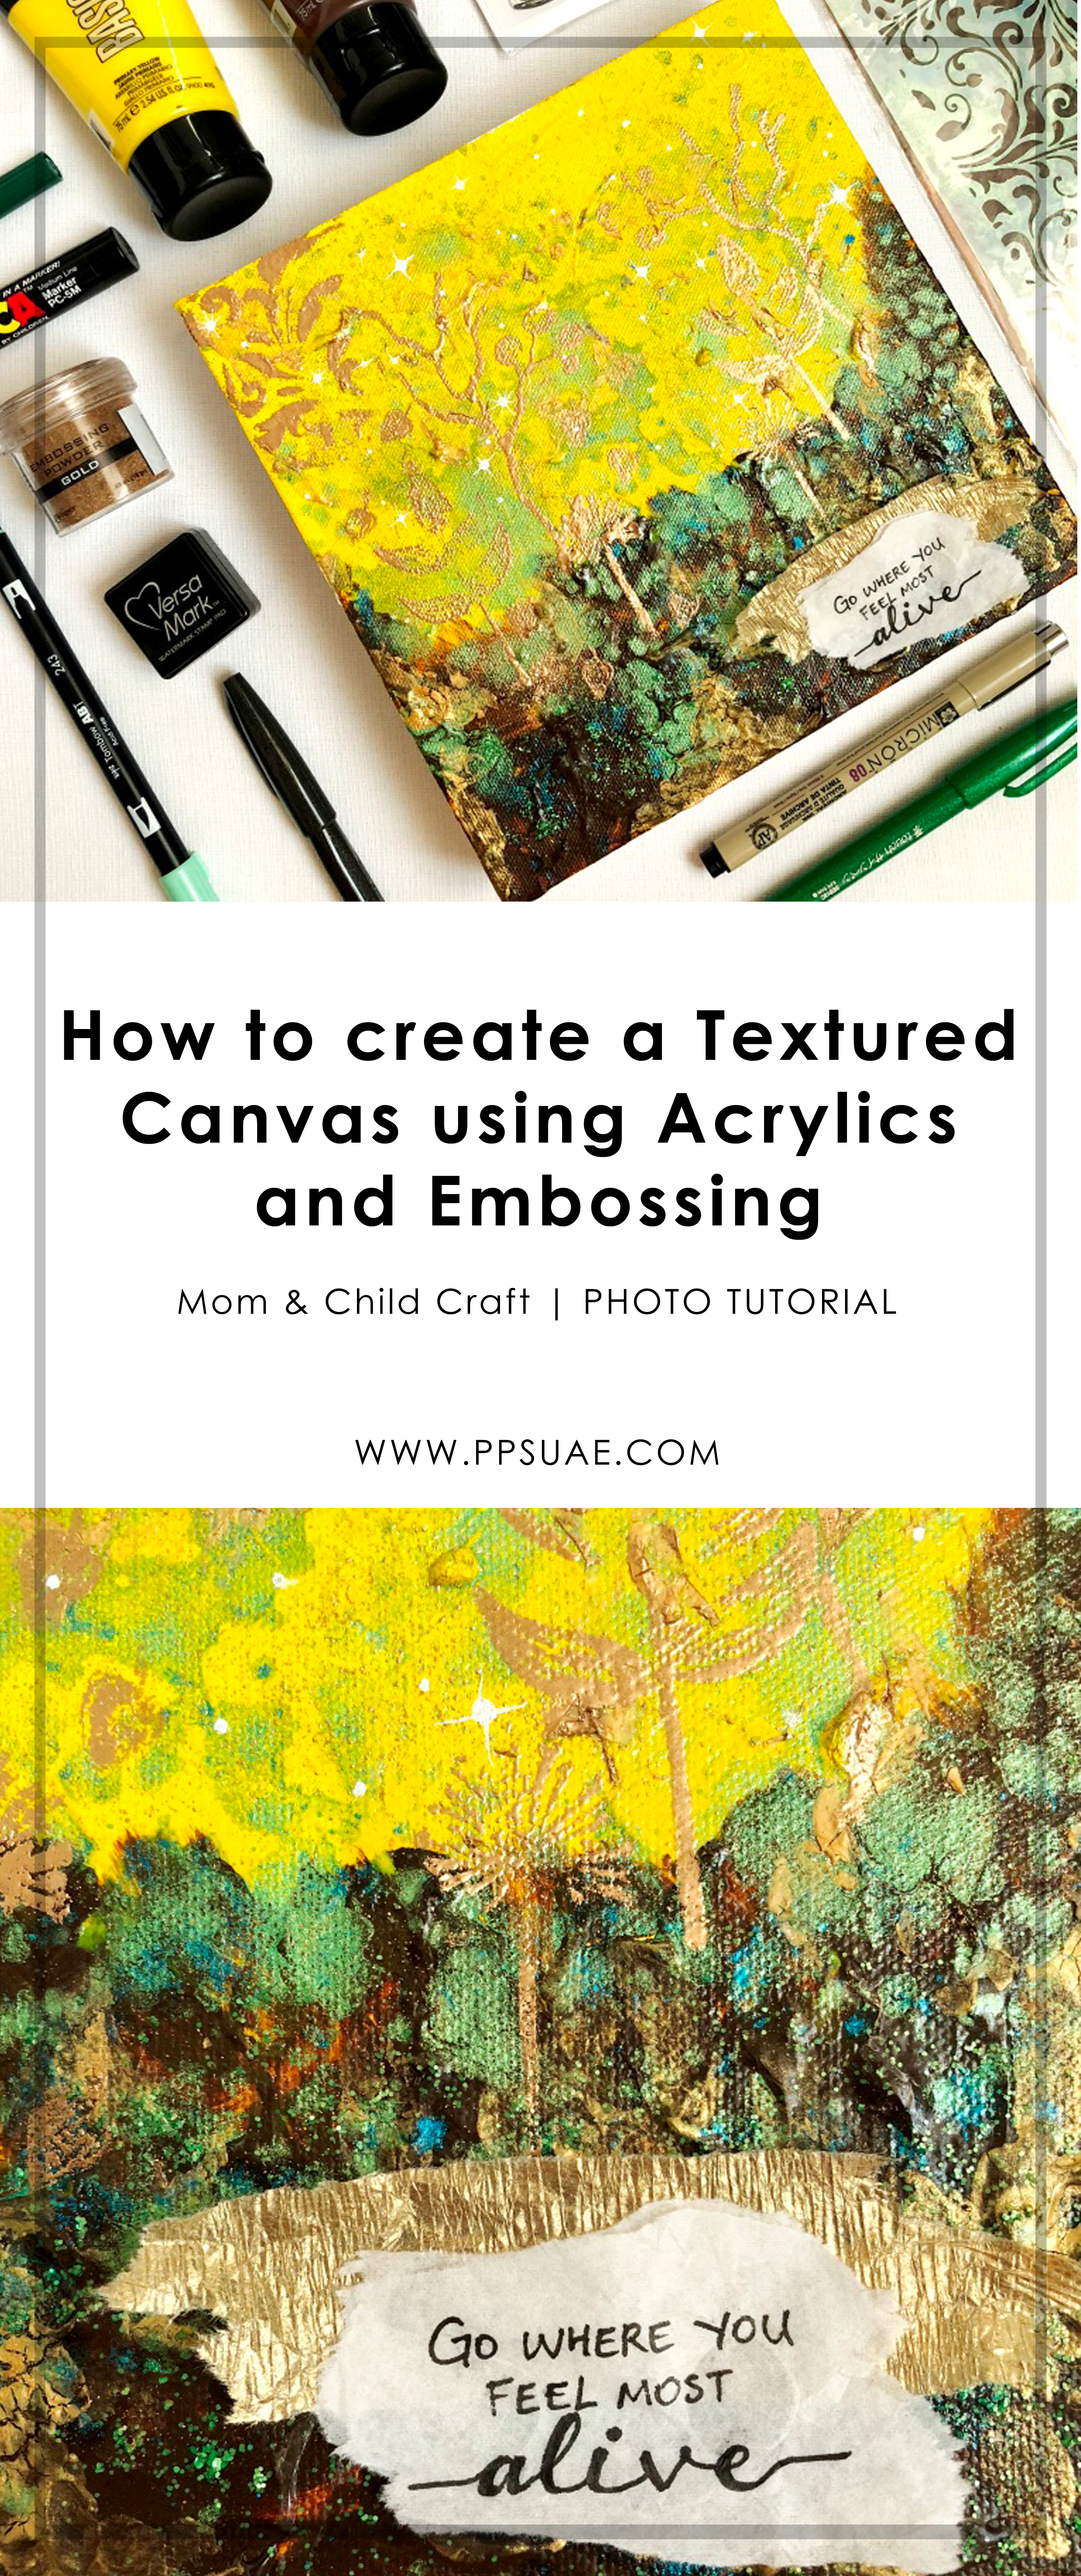 Acrylics and Embossing Feature Image